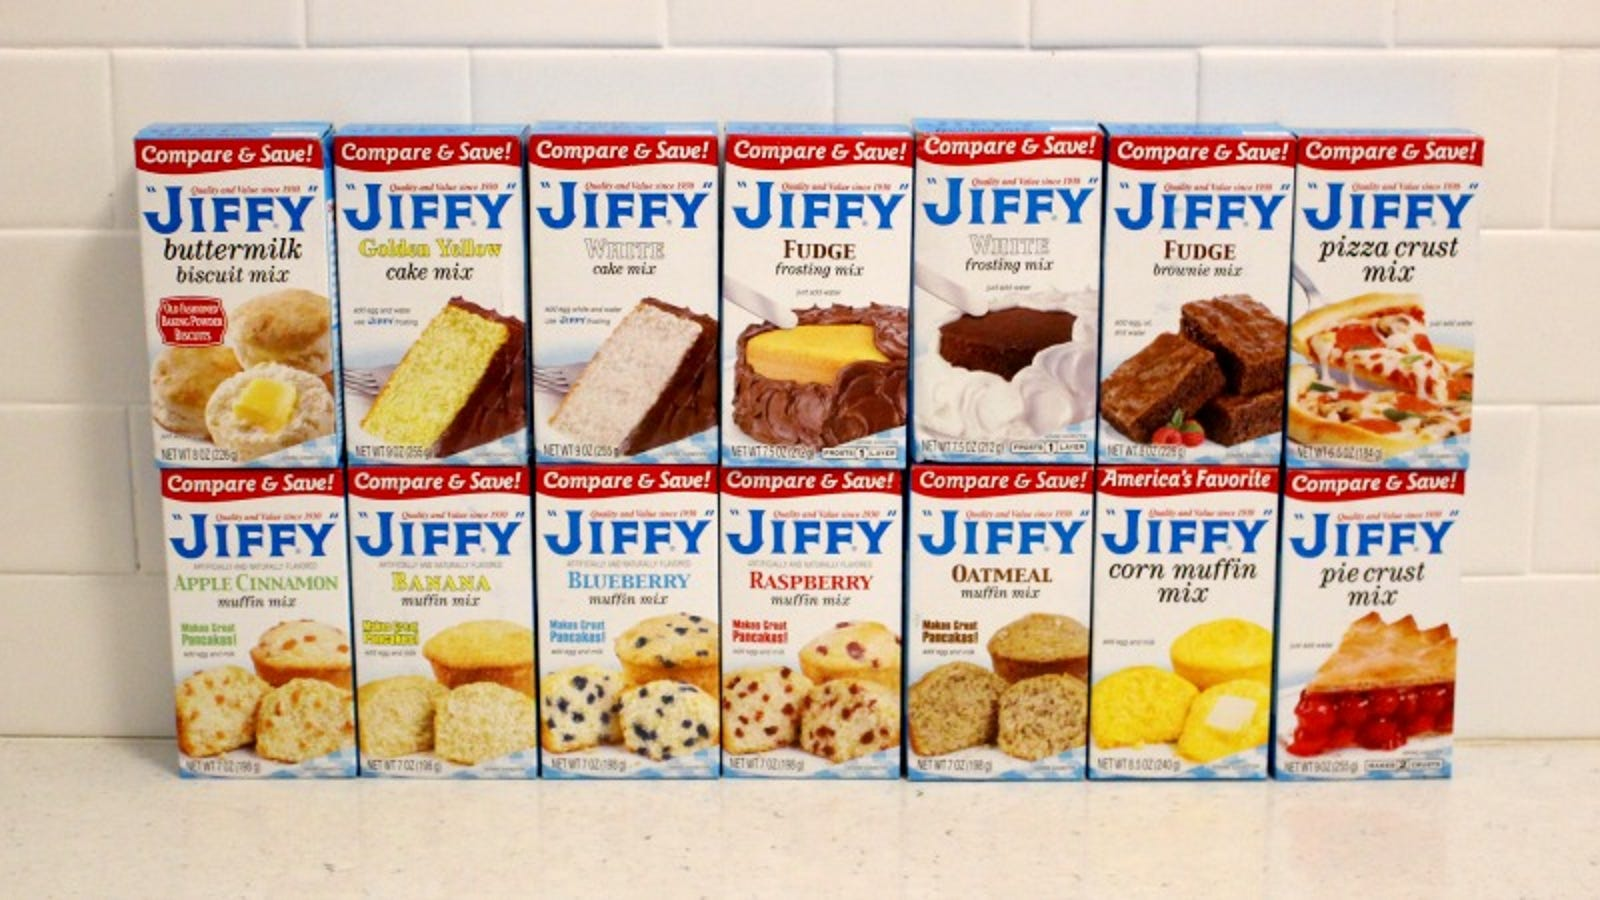 Every Single Box Of Jiffy Mix Baked And Tasted